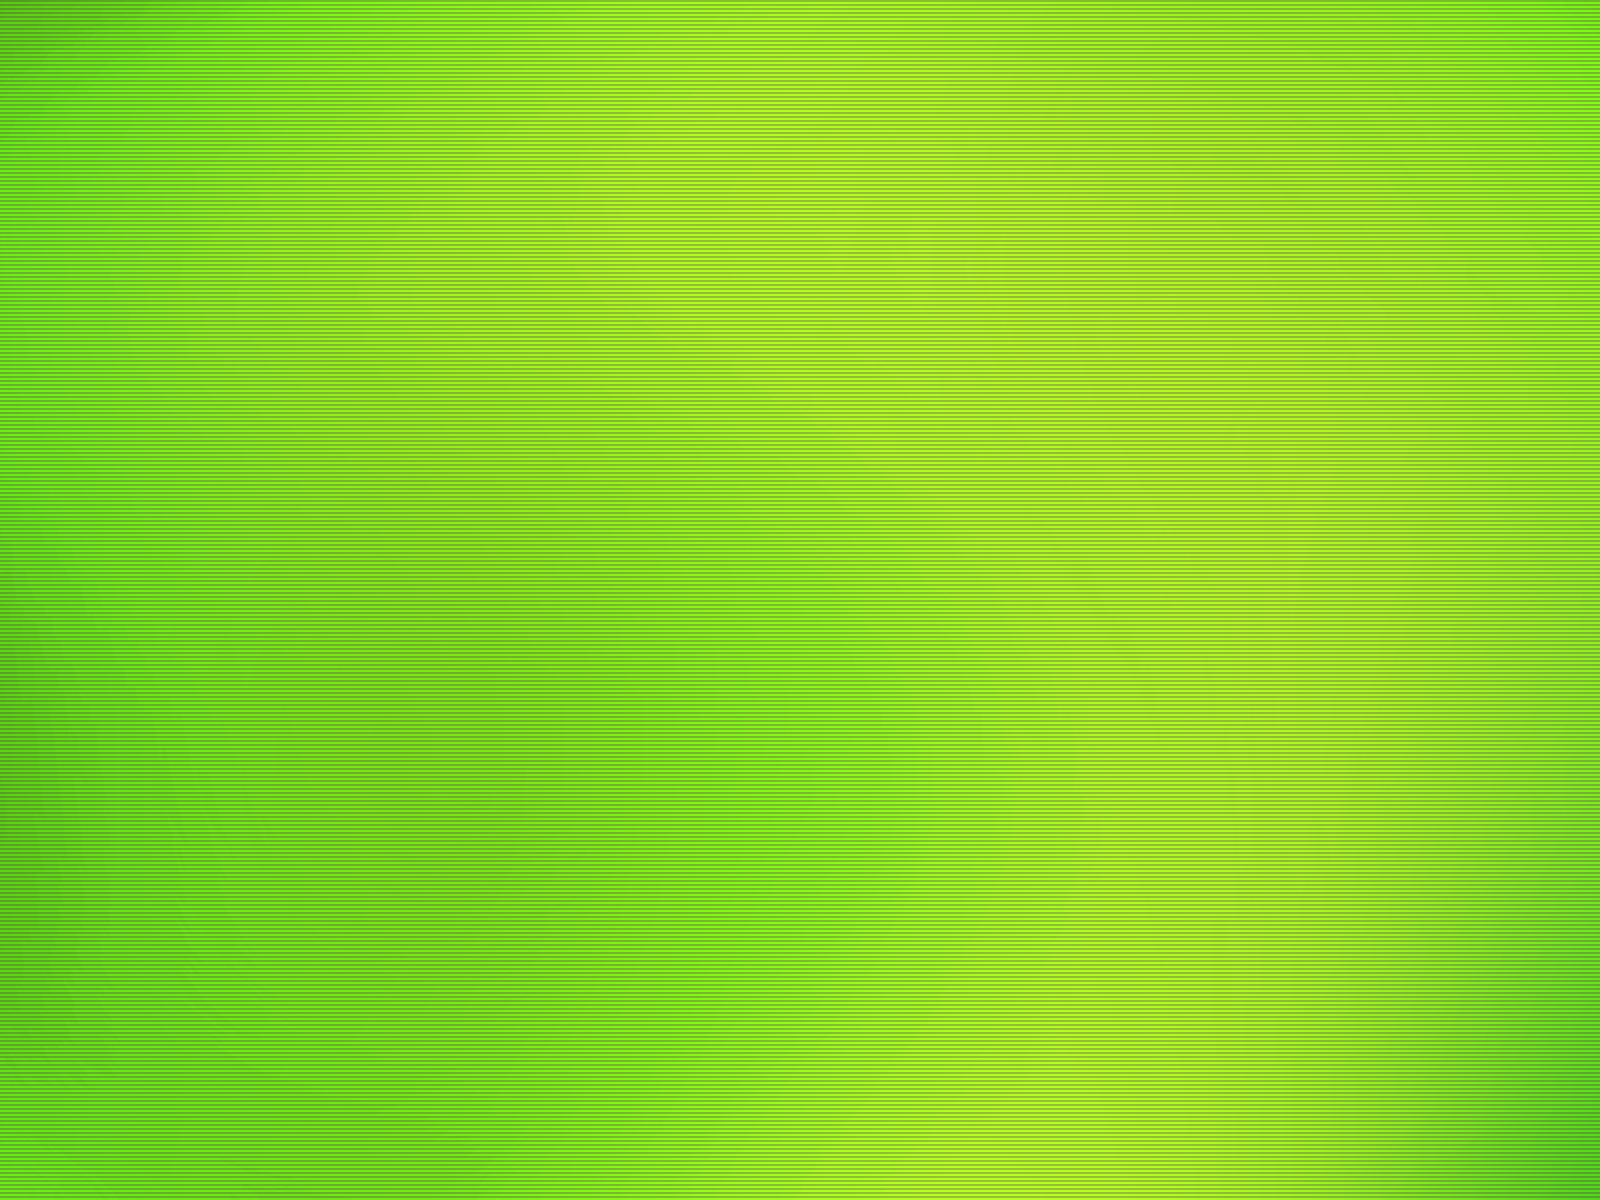 Plain Light Green Wallpaper 24341 1600x1200 px ...